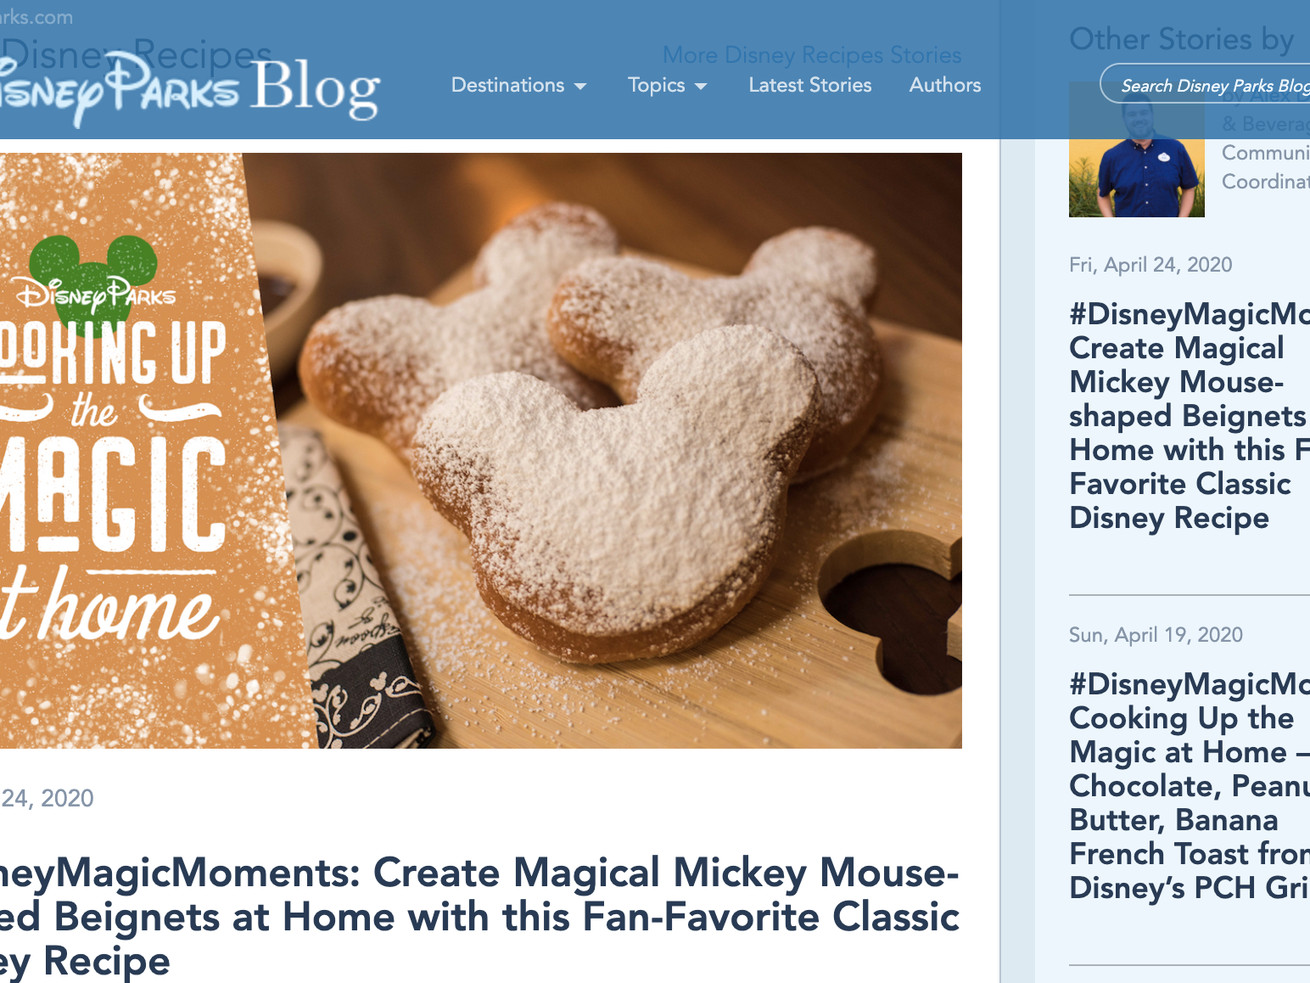 Disney released the recipe for its Mickey Mouse-shaped beignets.